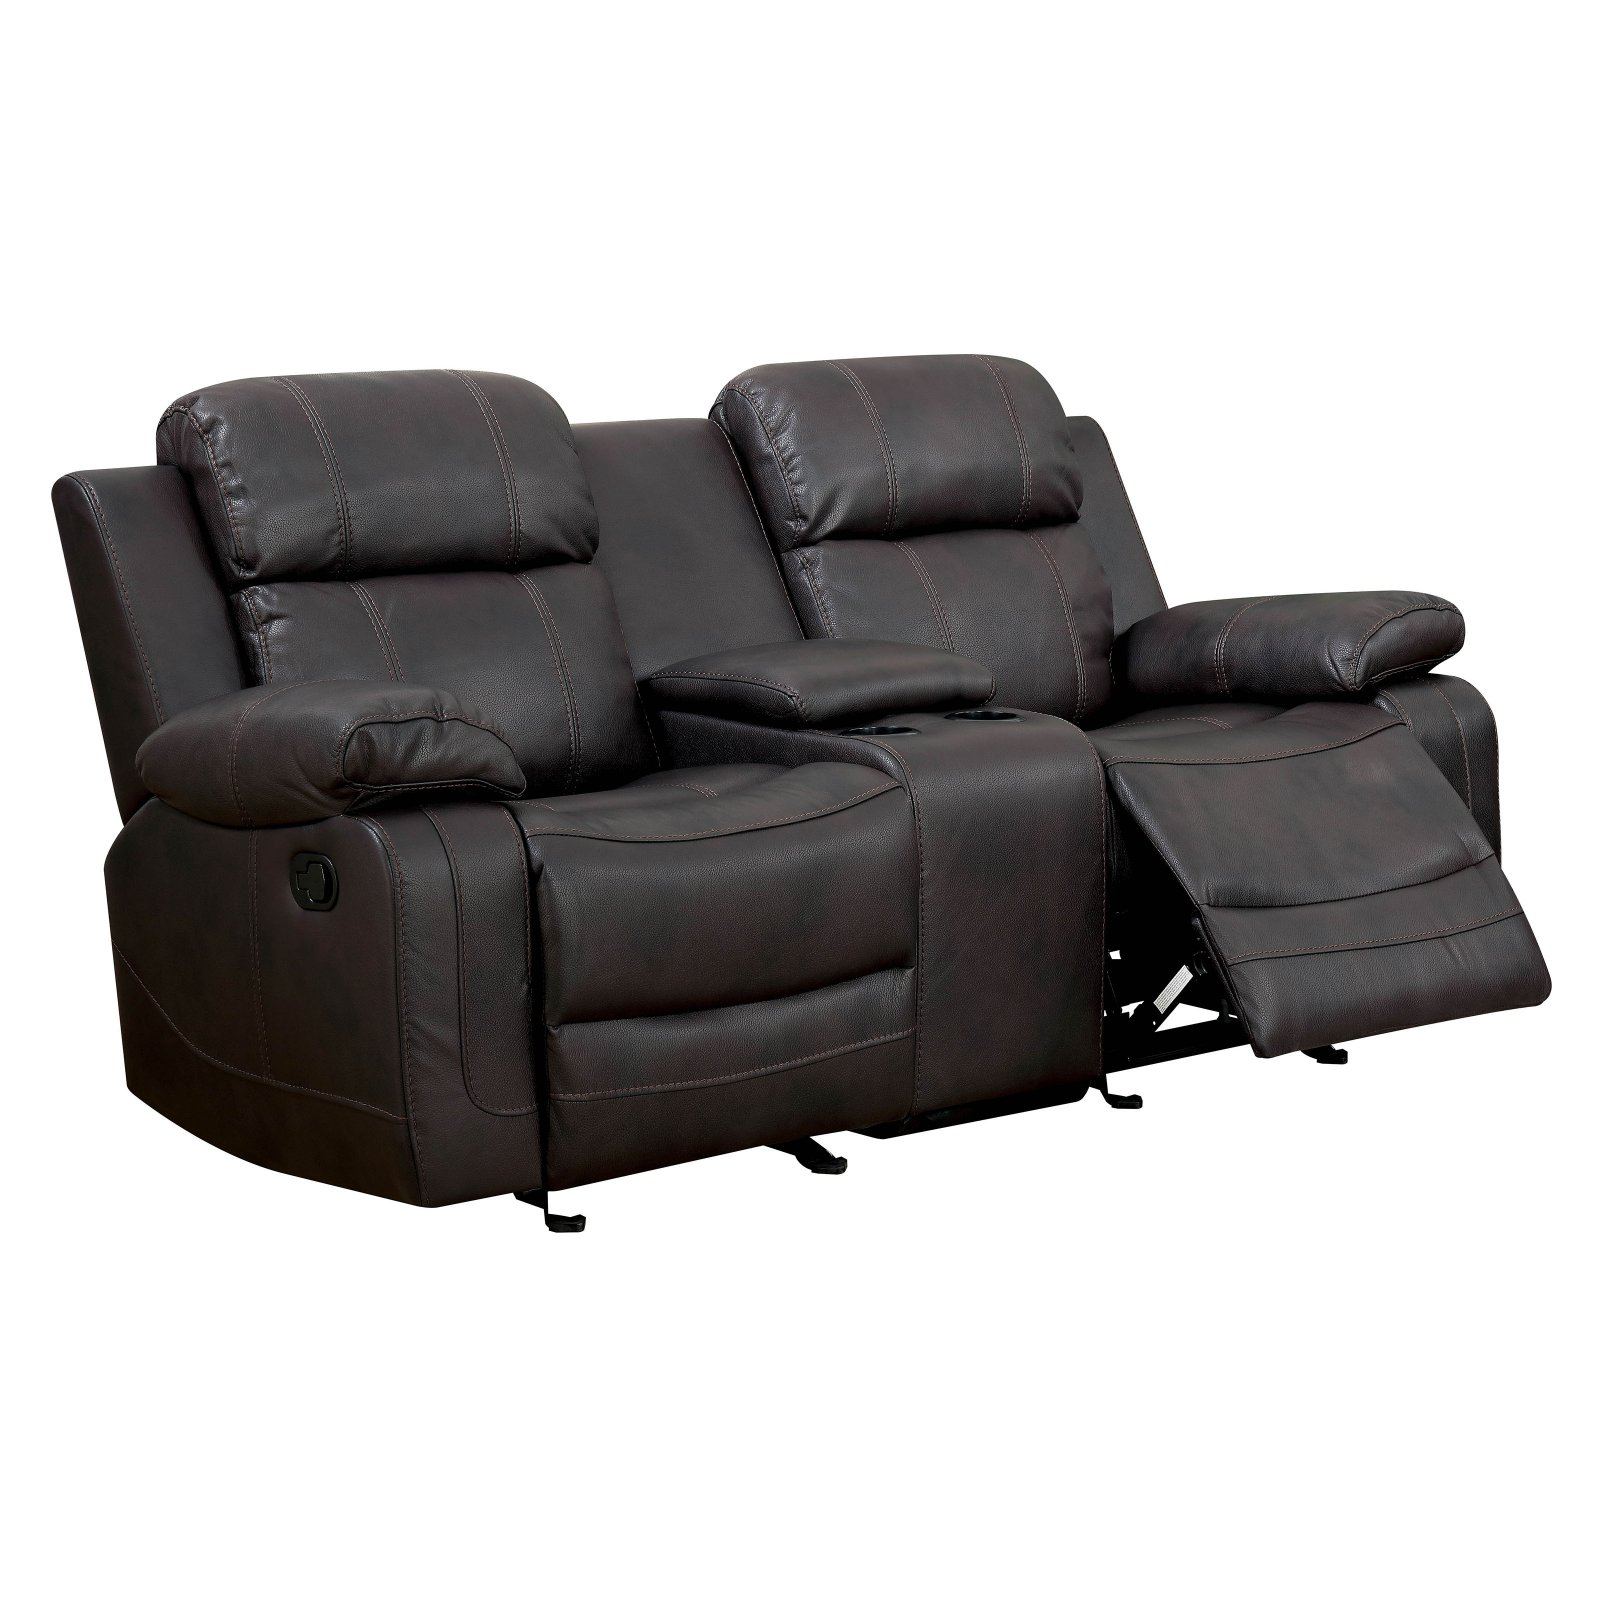 Furniture of America Milton Reclining Loveseat